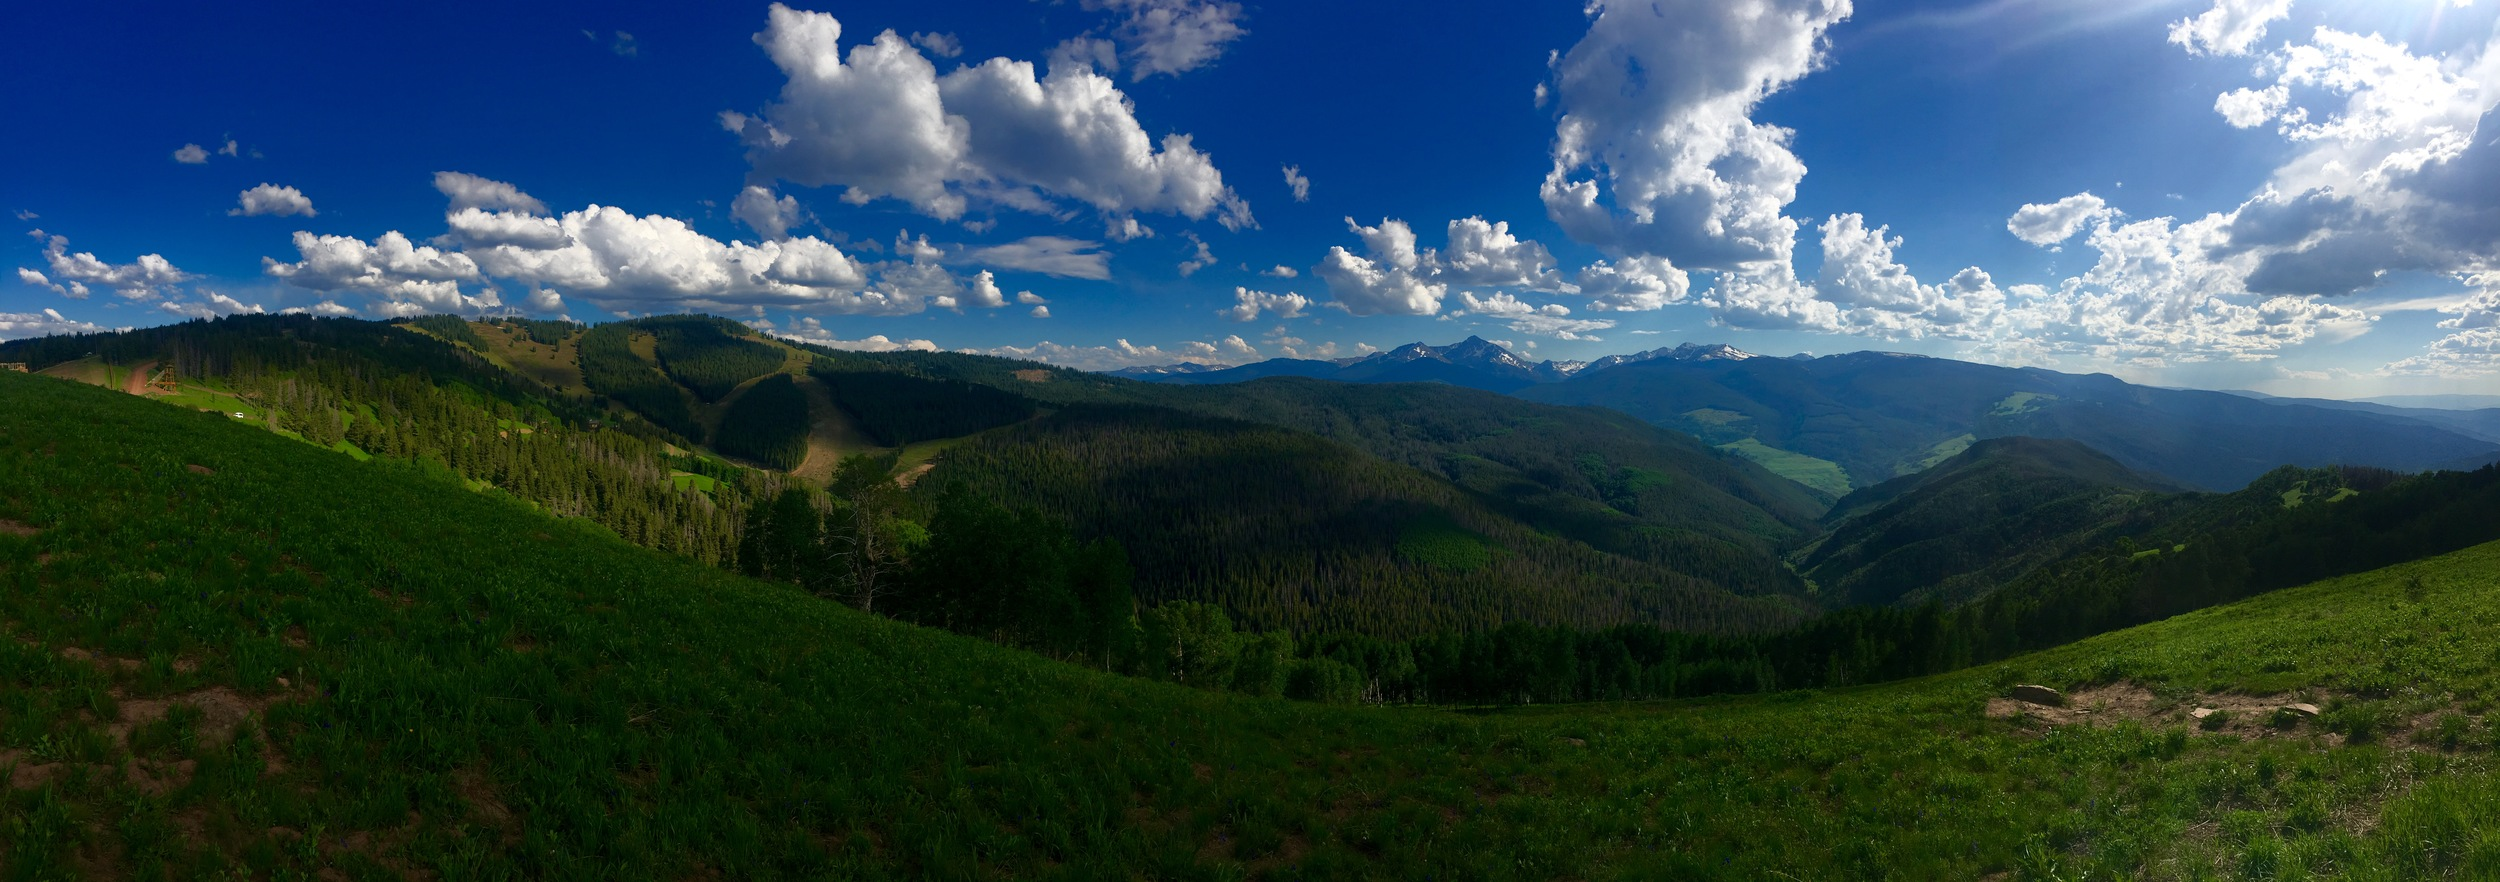 Panoramic views abound at Vail's new Epic Discovery mountain park. (@beingalexp)